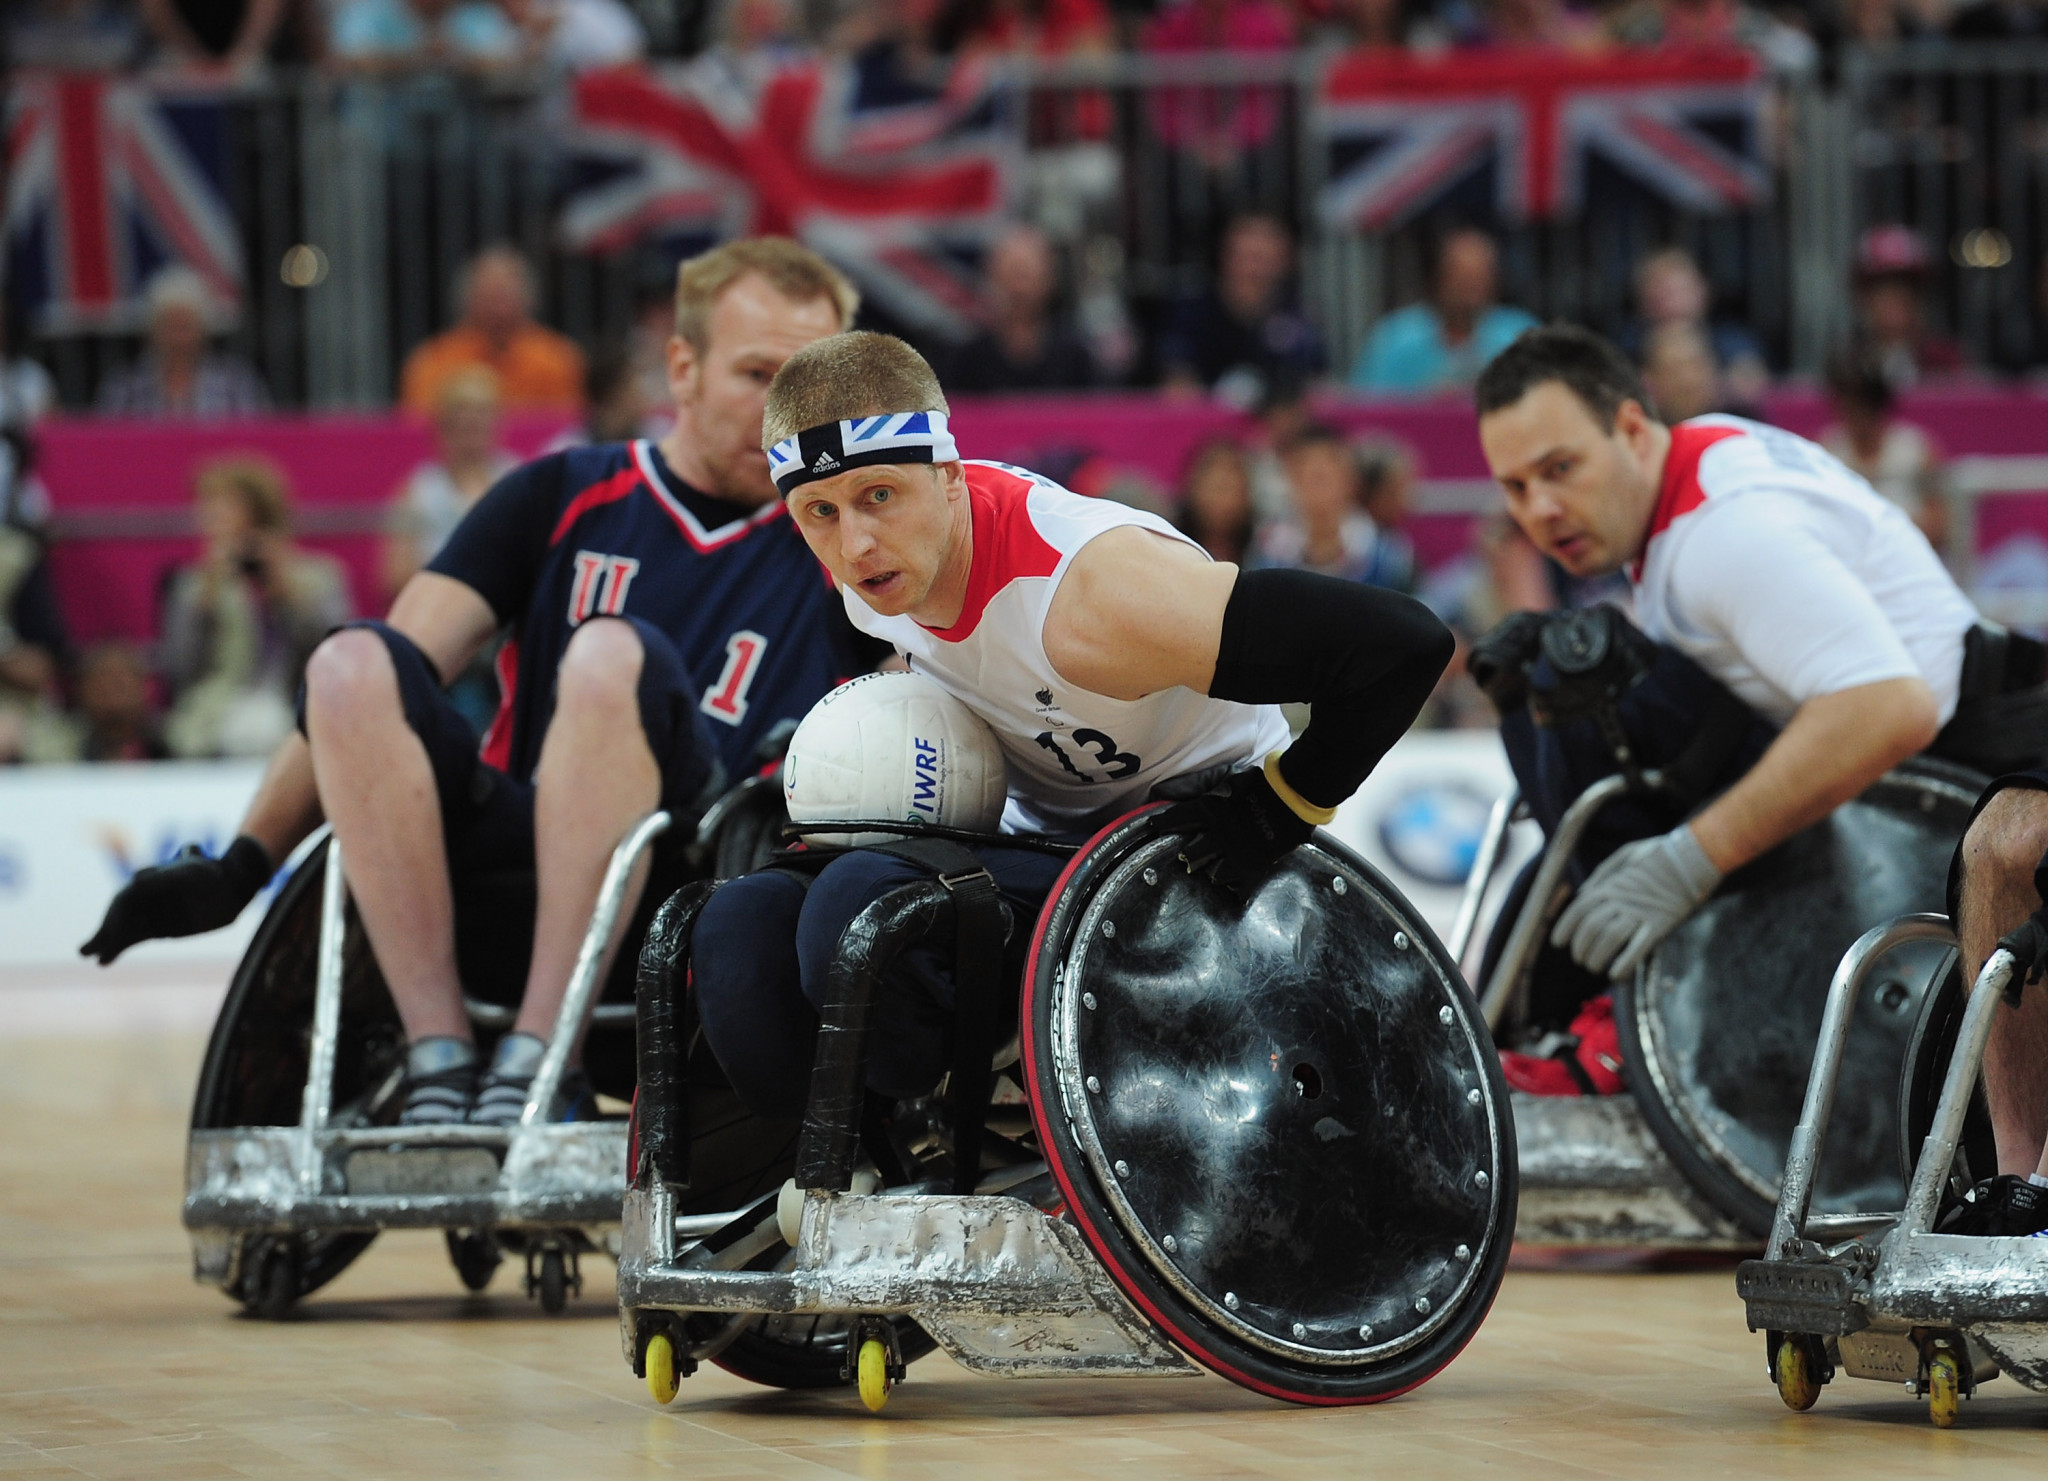 wheelchair quad indoor chair plans great britain announce rugby squad for nations